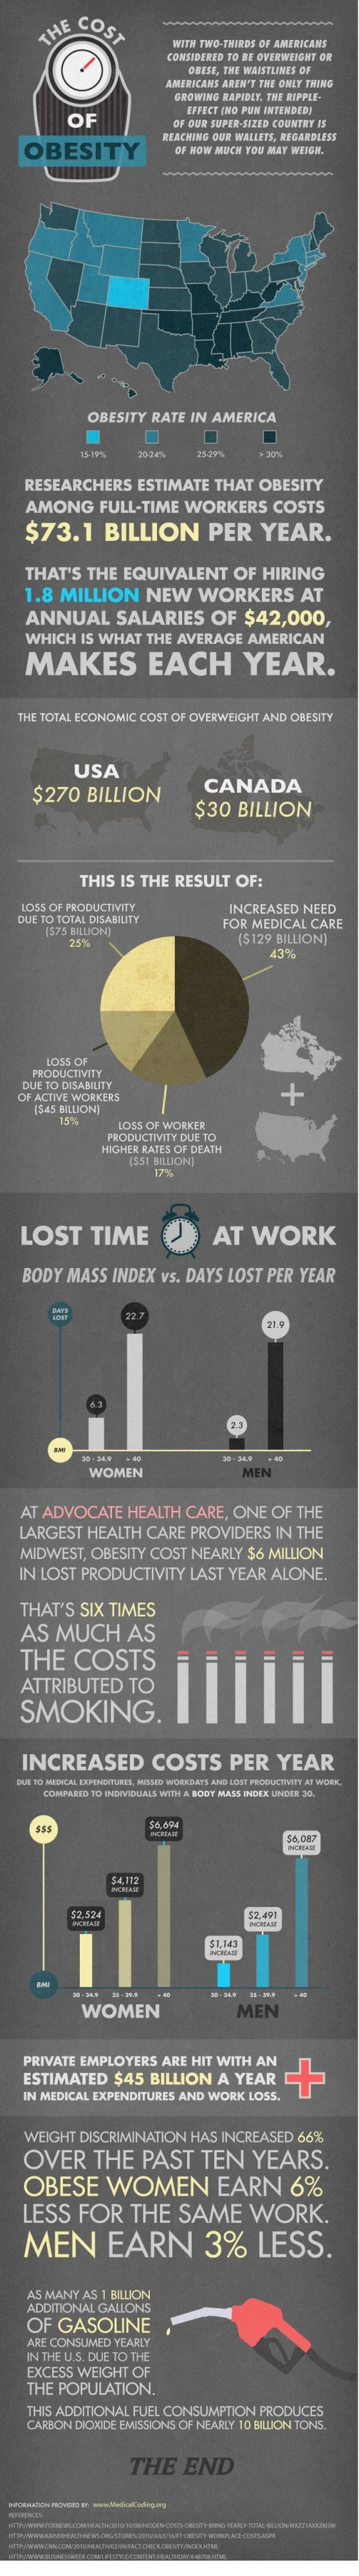 The Cost of Obesity (Infographic)